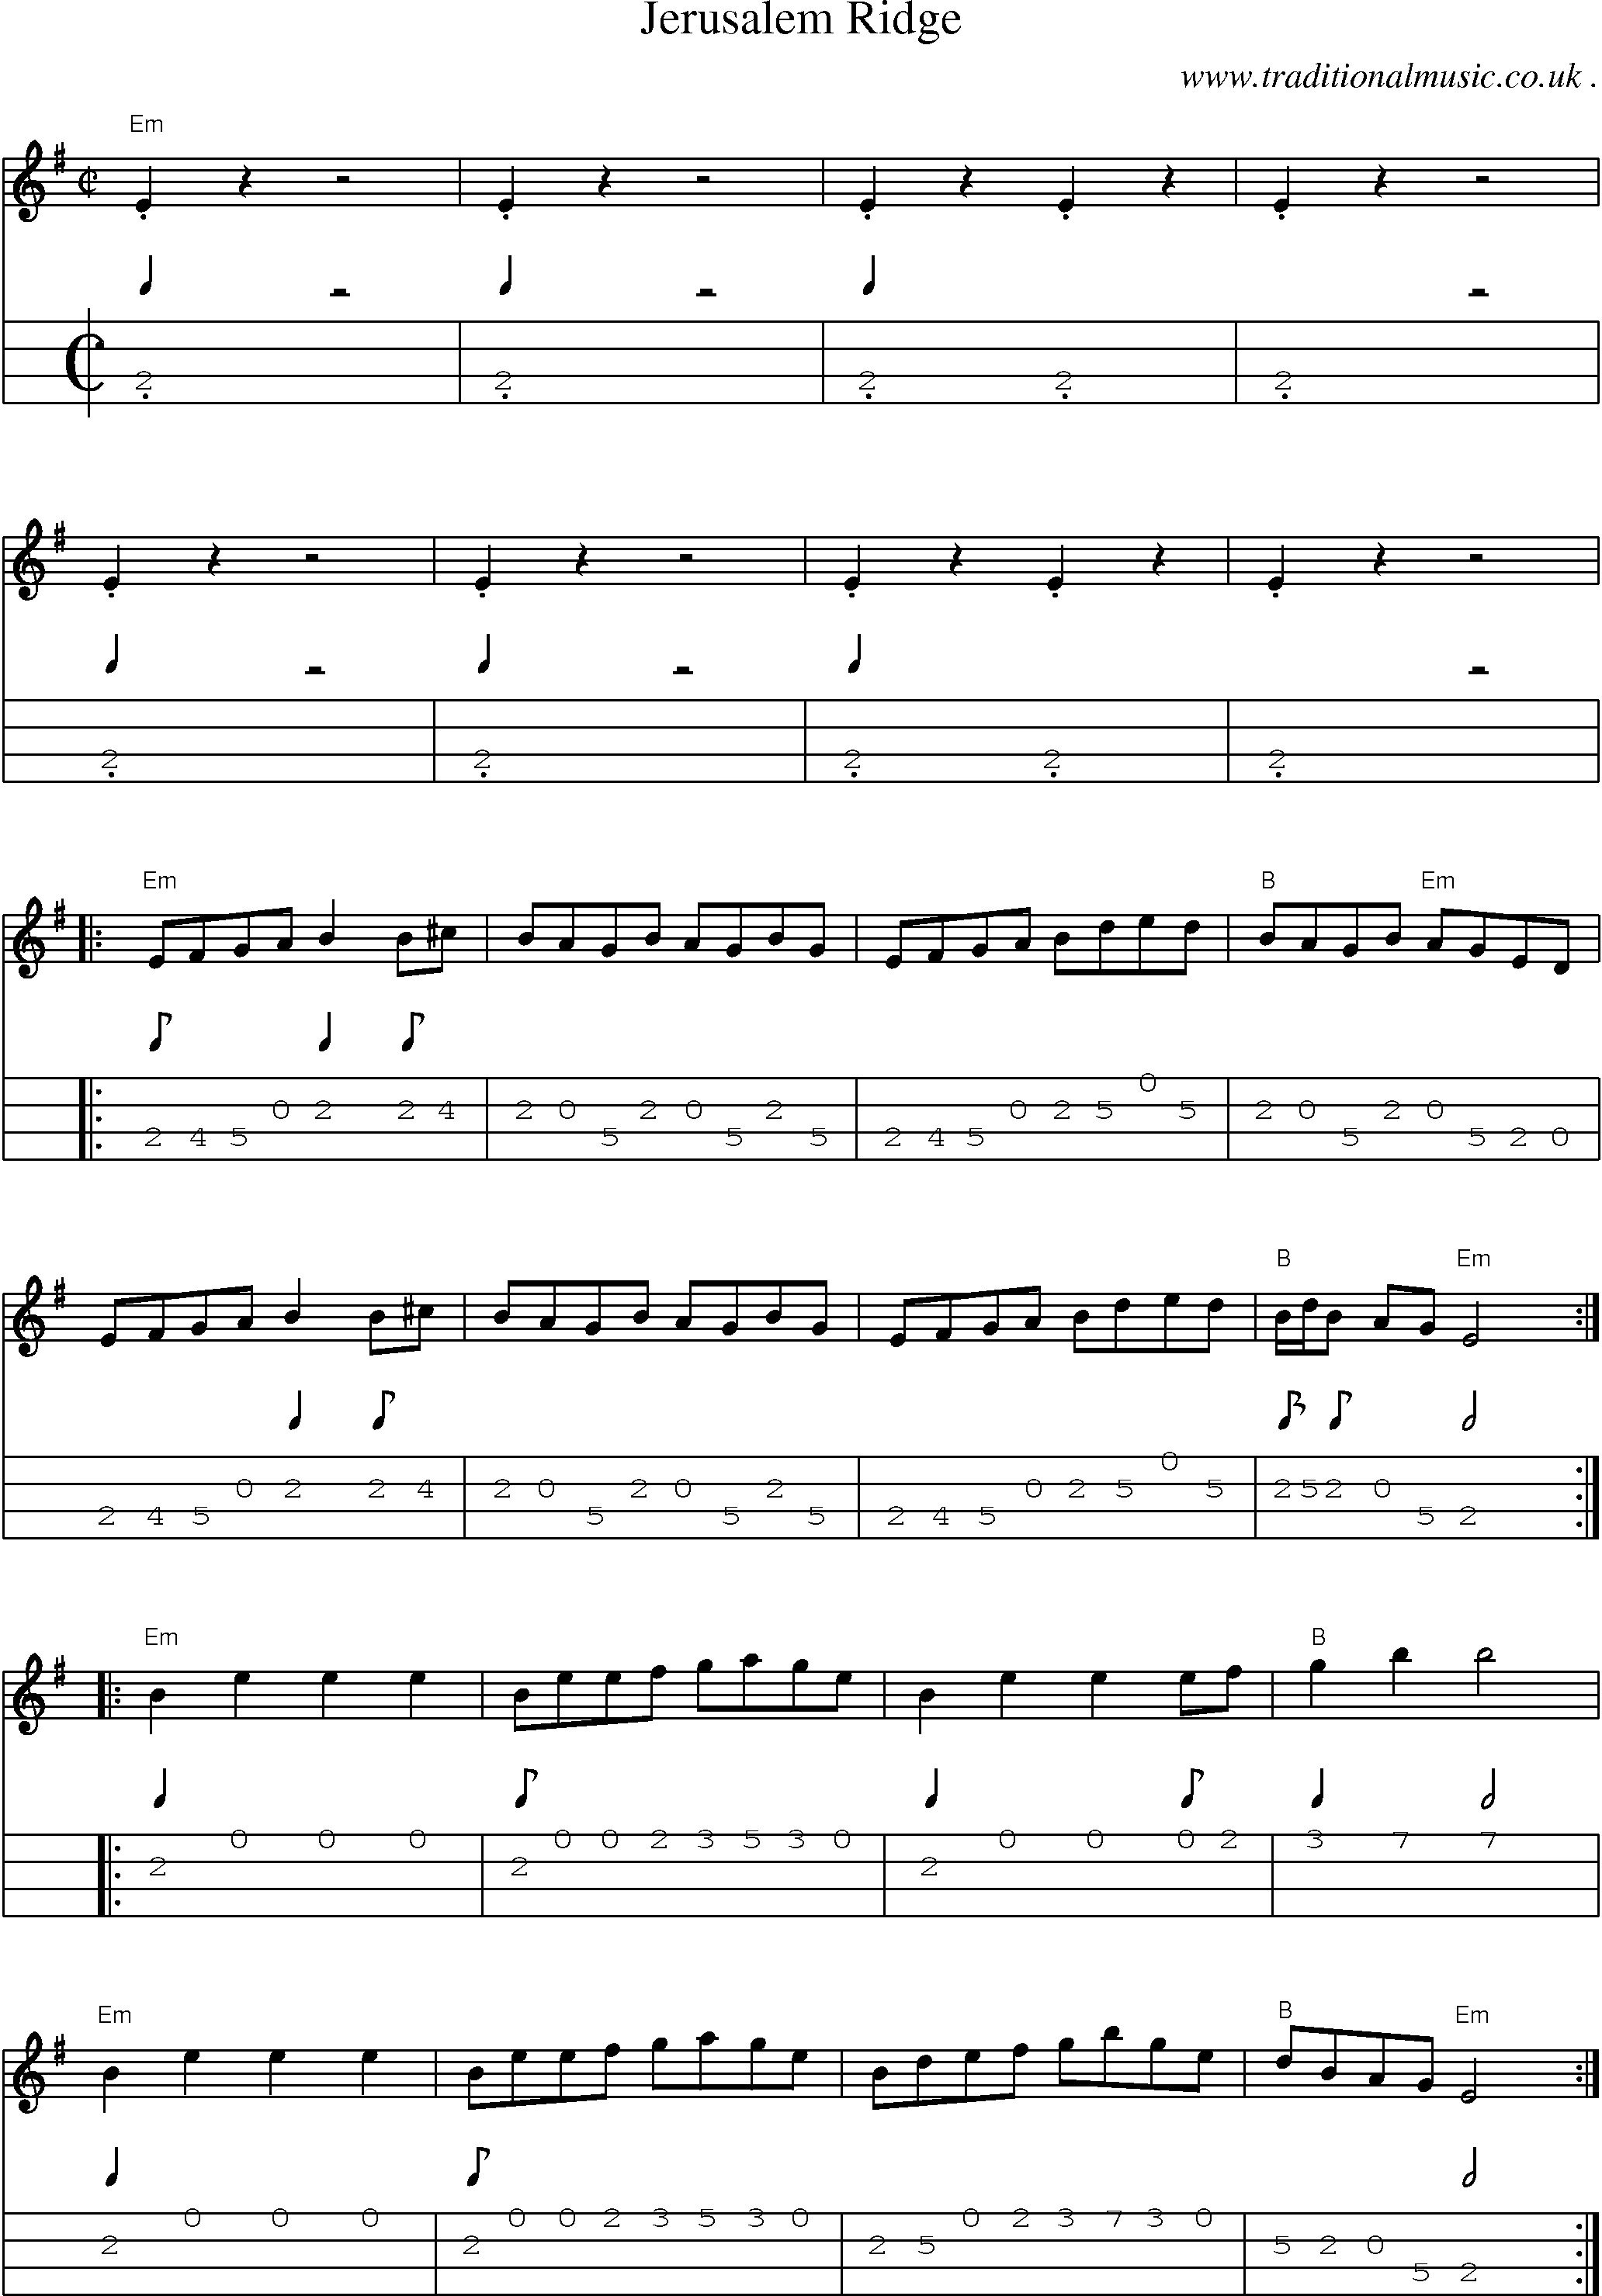 American Old-time music, Scores and Tabs for Mandolin - Jerusalem Ridge